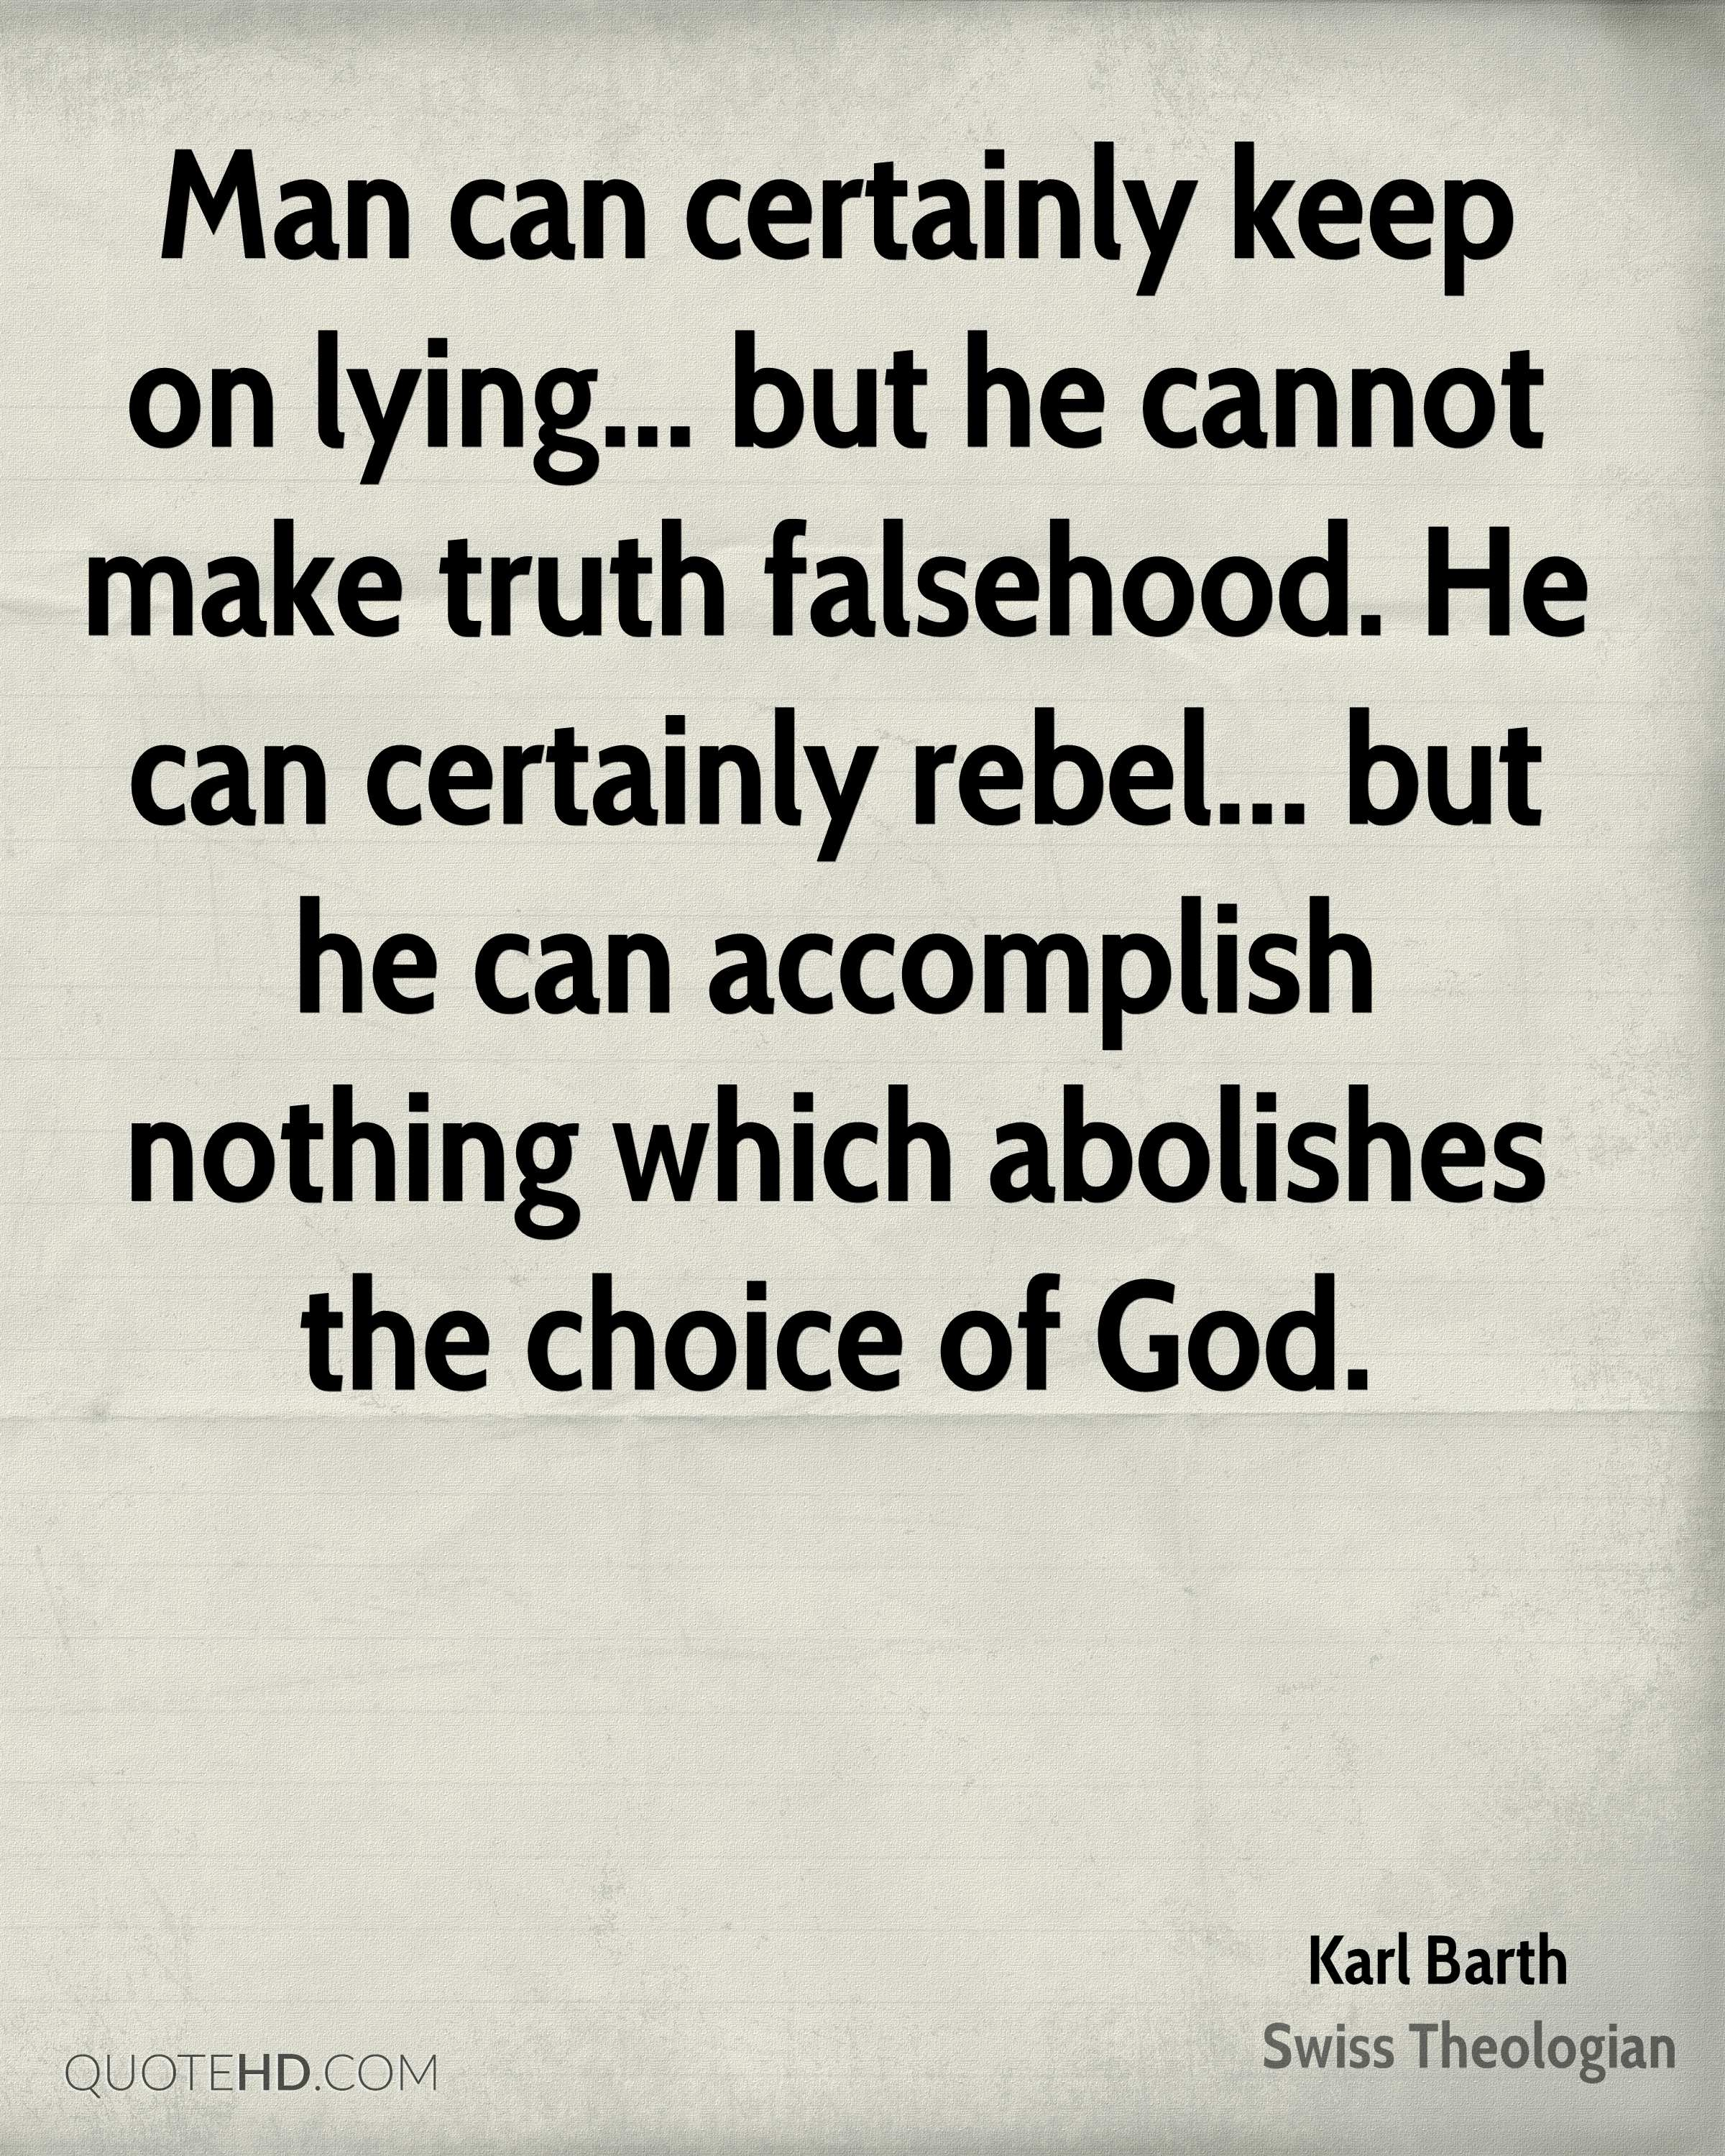 Man can certainly keep on lying... but he cannot make truth falsehood. He can certainly rebel... but he can accomplish nothing which abolishes the choice of God.